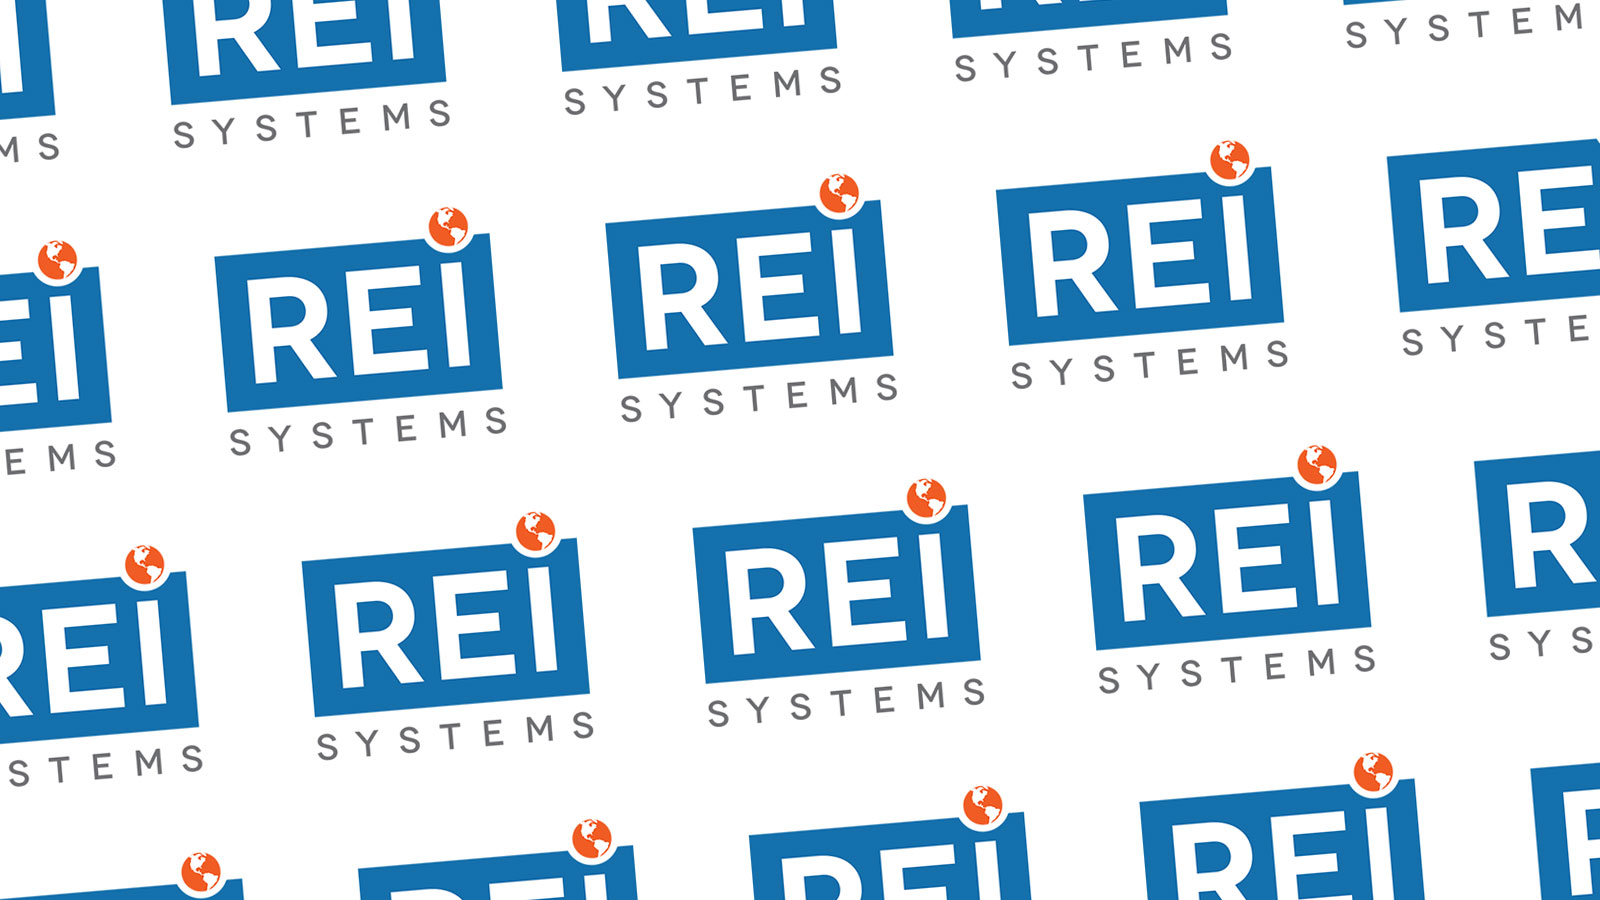 A look at technology solutions provider REI Systems (and how to get hired there)